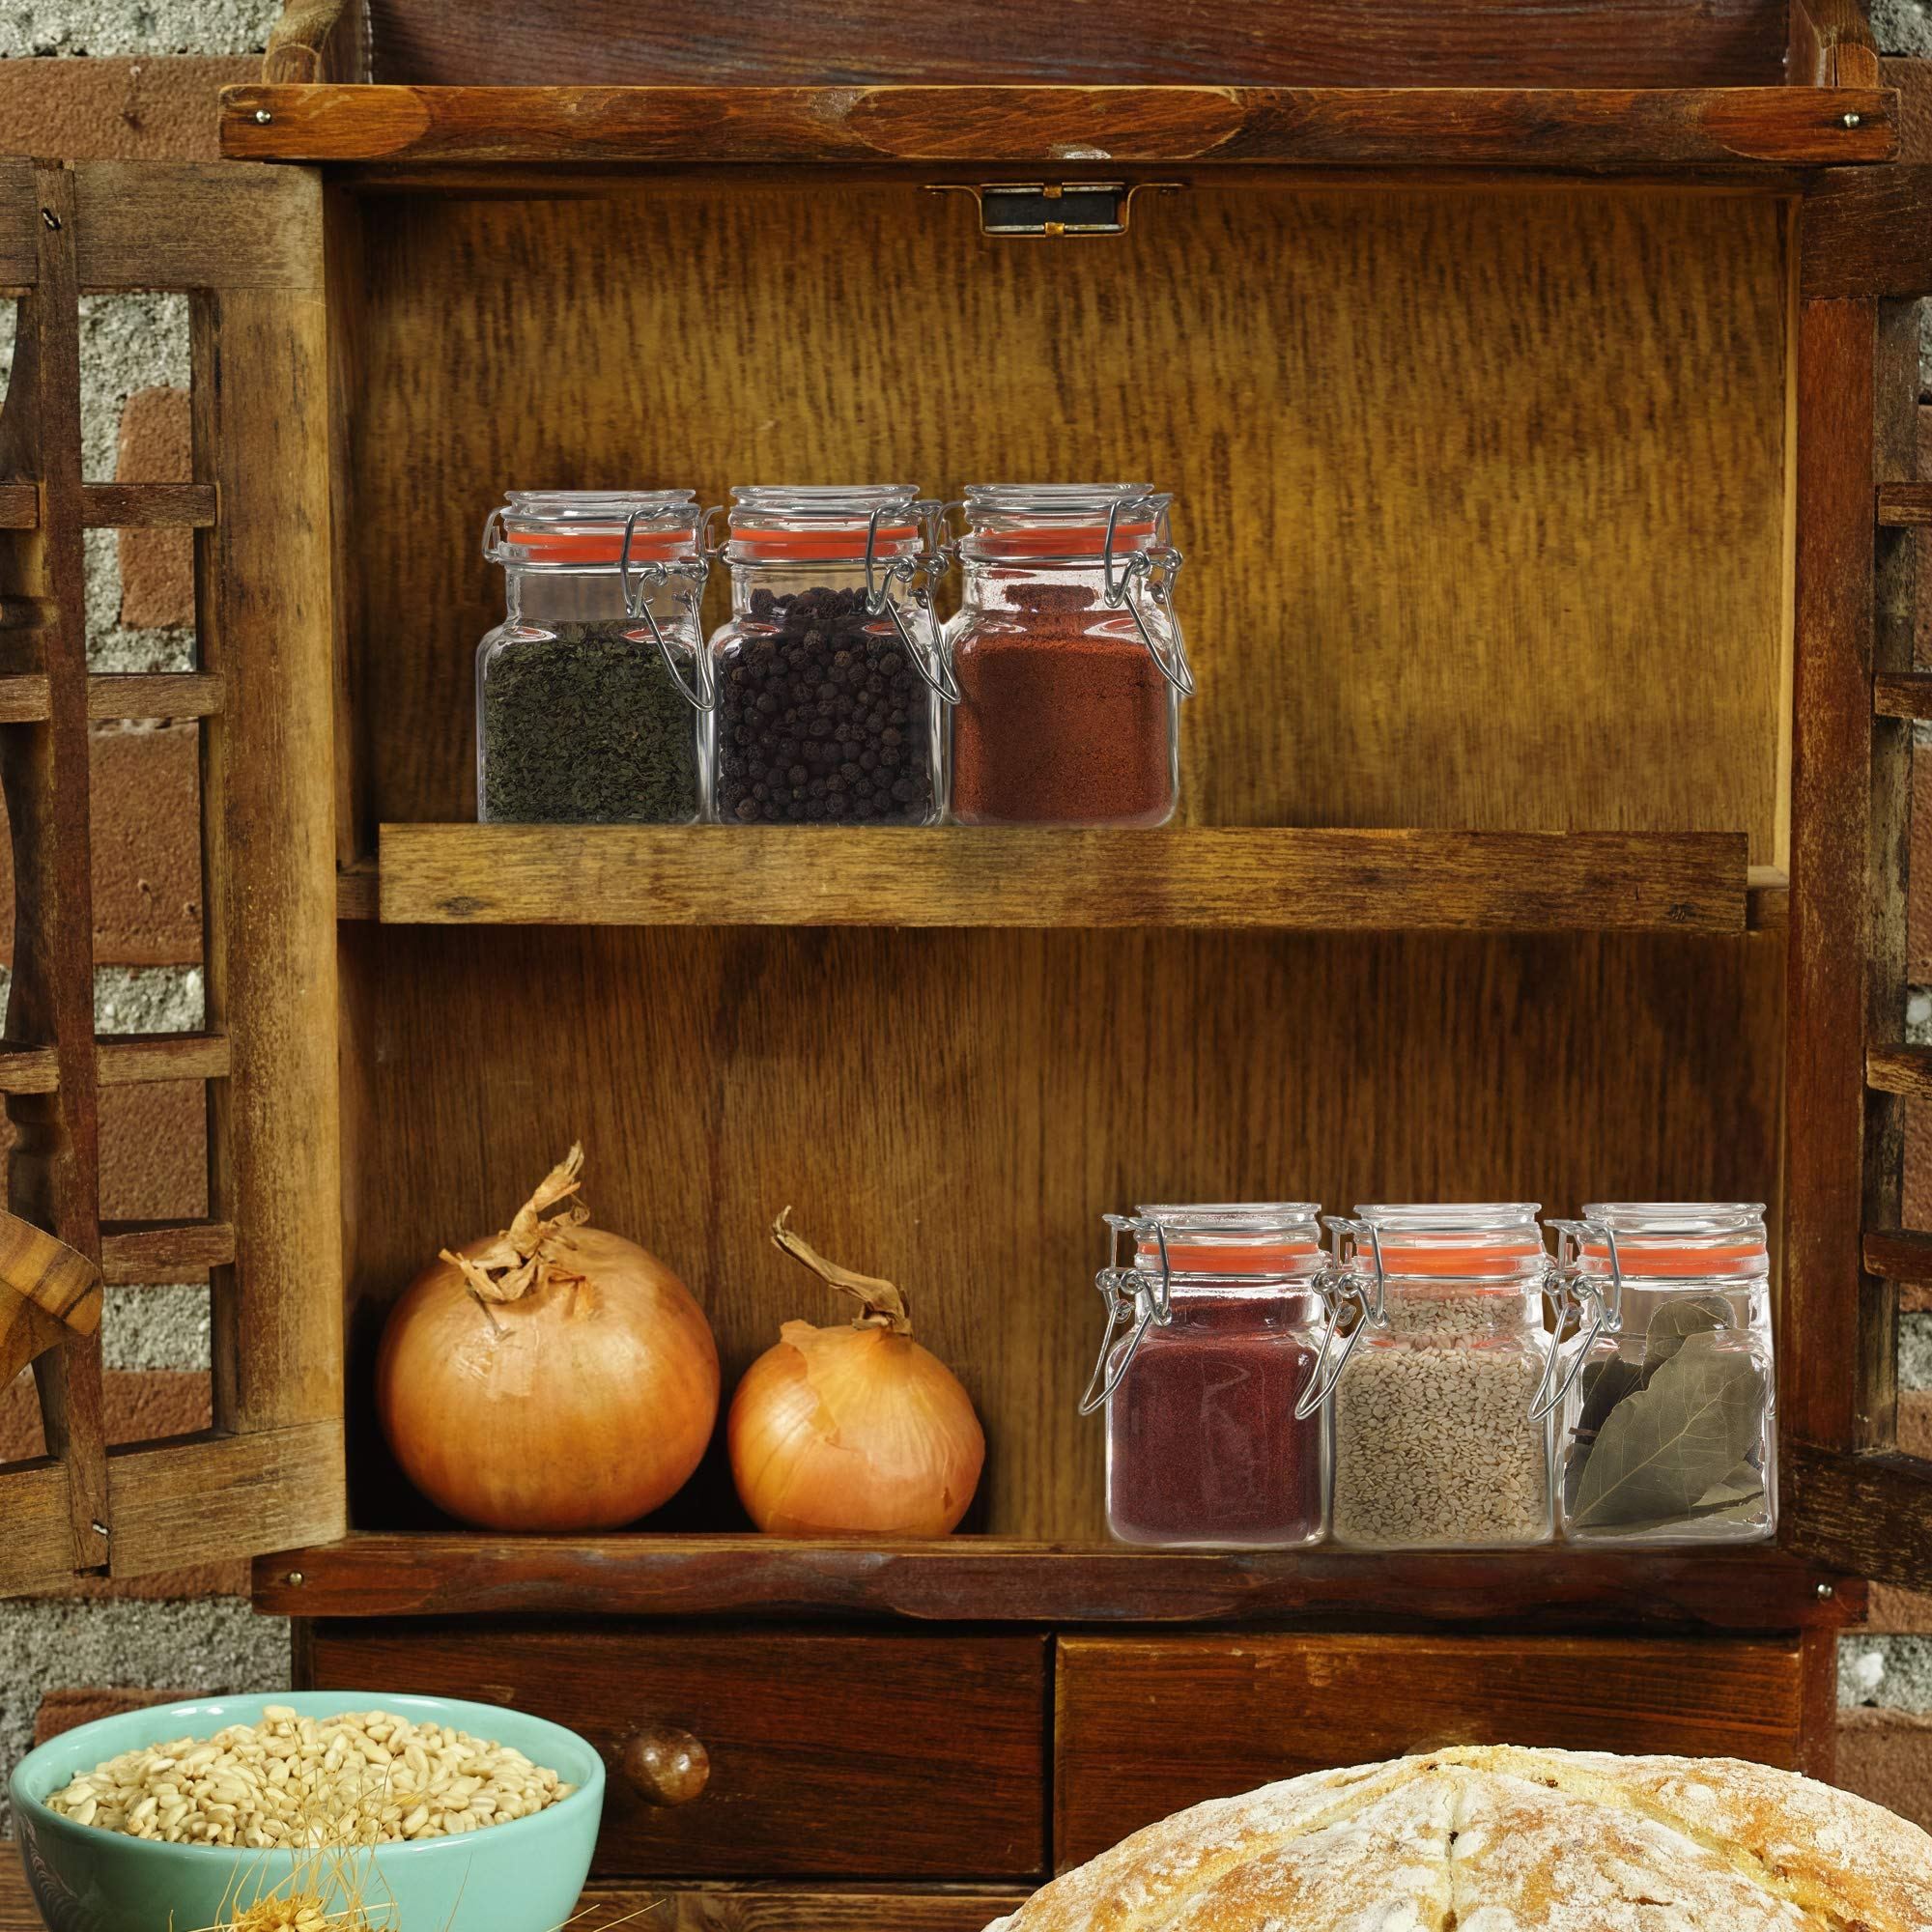 24 Count 3.4 oz Spice Jars Glass Jar with Airtight Lid, Mini Square Glass Spice Jars, Empty Spice Bottles with Labels, Dried Herbs Jars, Glass Apothecary Jars with Lids, Small Glass Spice Containers24 by California Home Goods (Image #7)